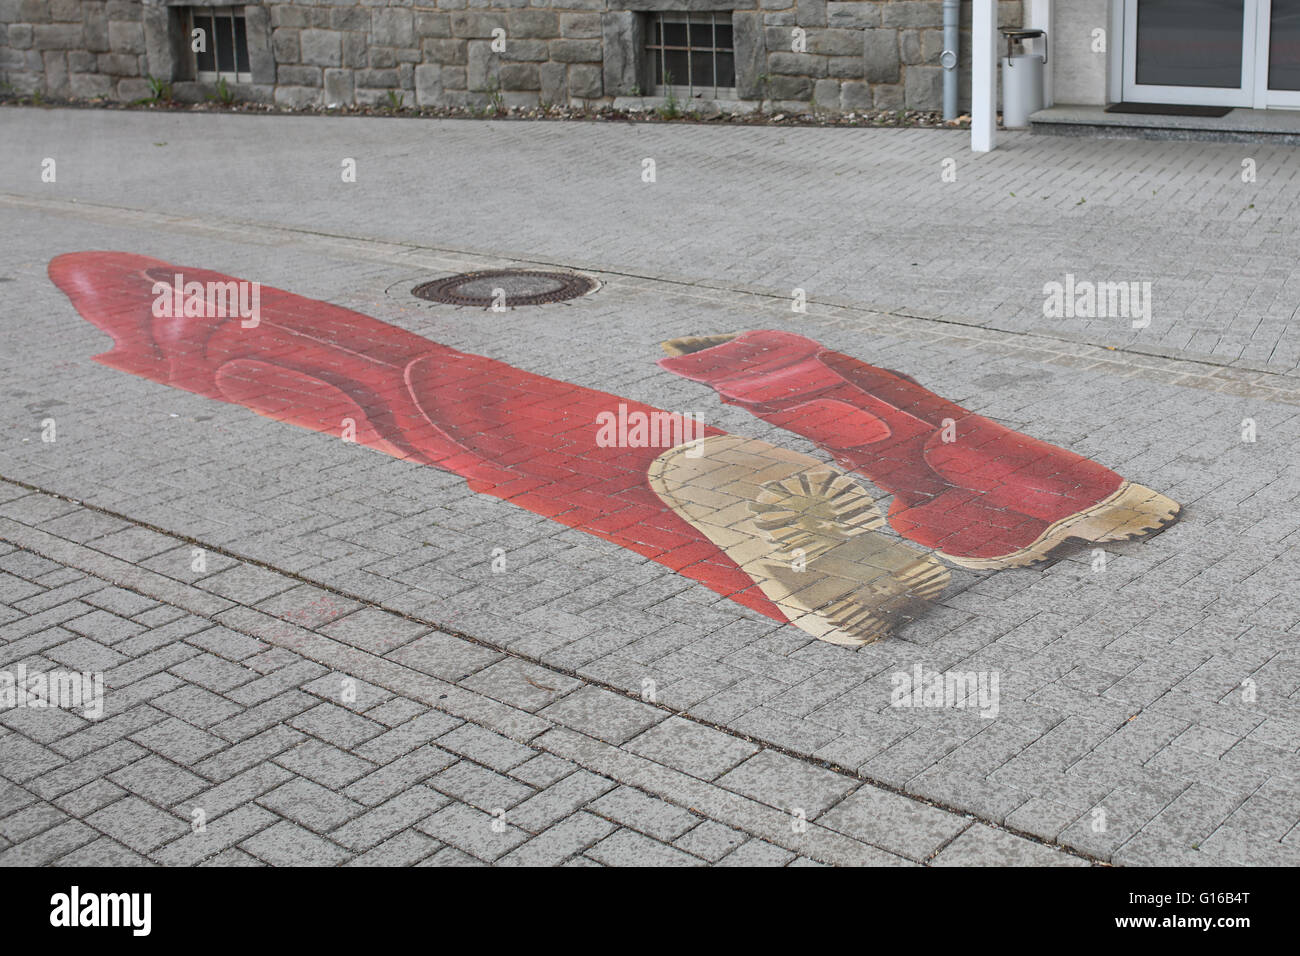 Street Mural on pavement with raindrops, Montabaur, Germany, crop of G16B4K - Stock Image